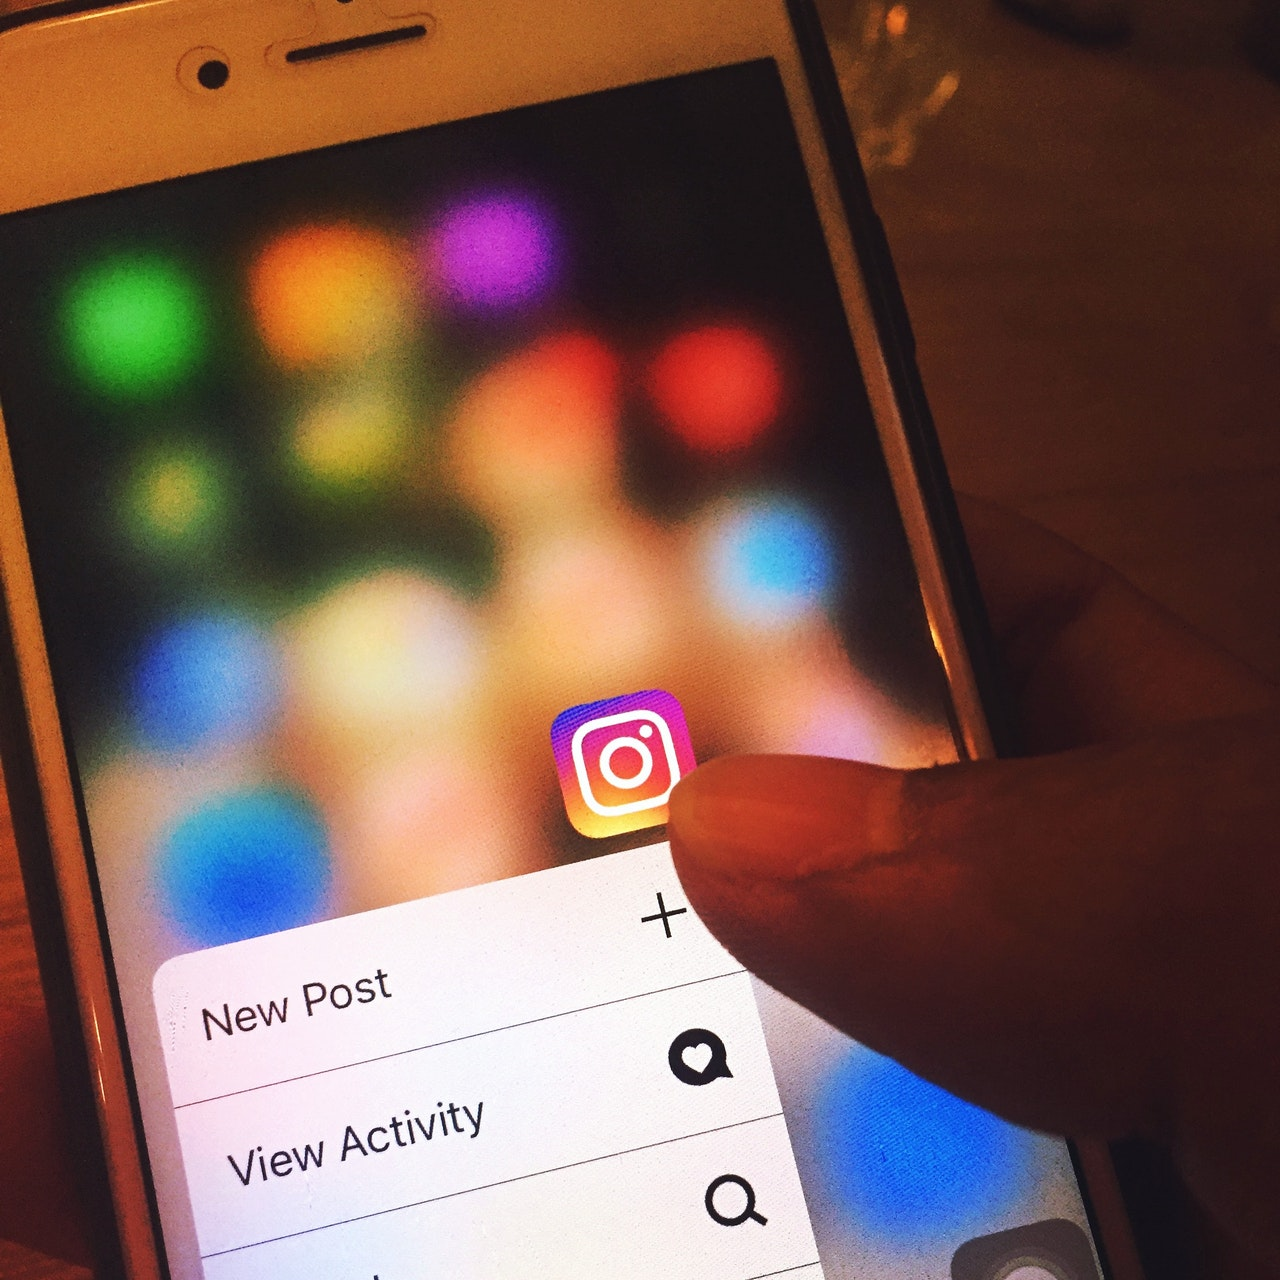 16 Surprising Effects of Social Media on Mental Health